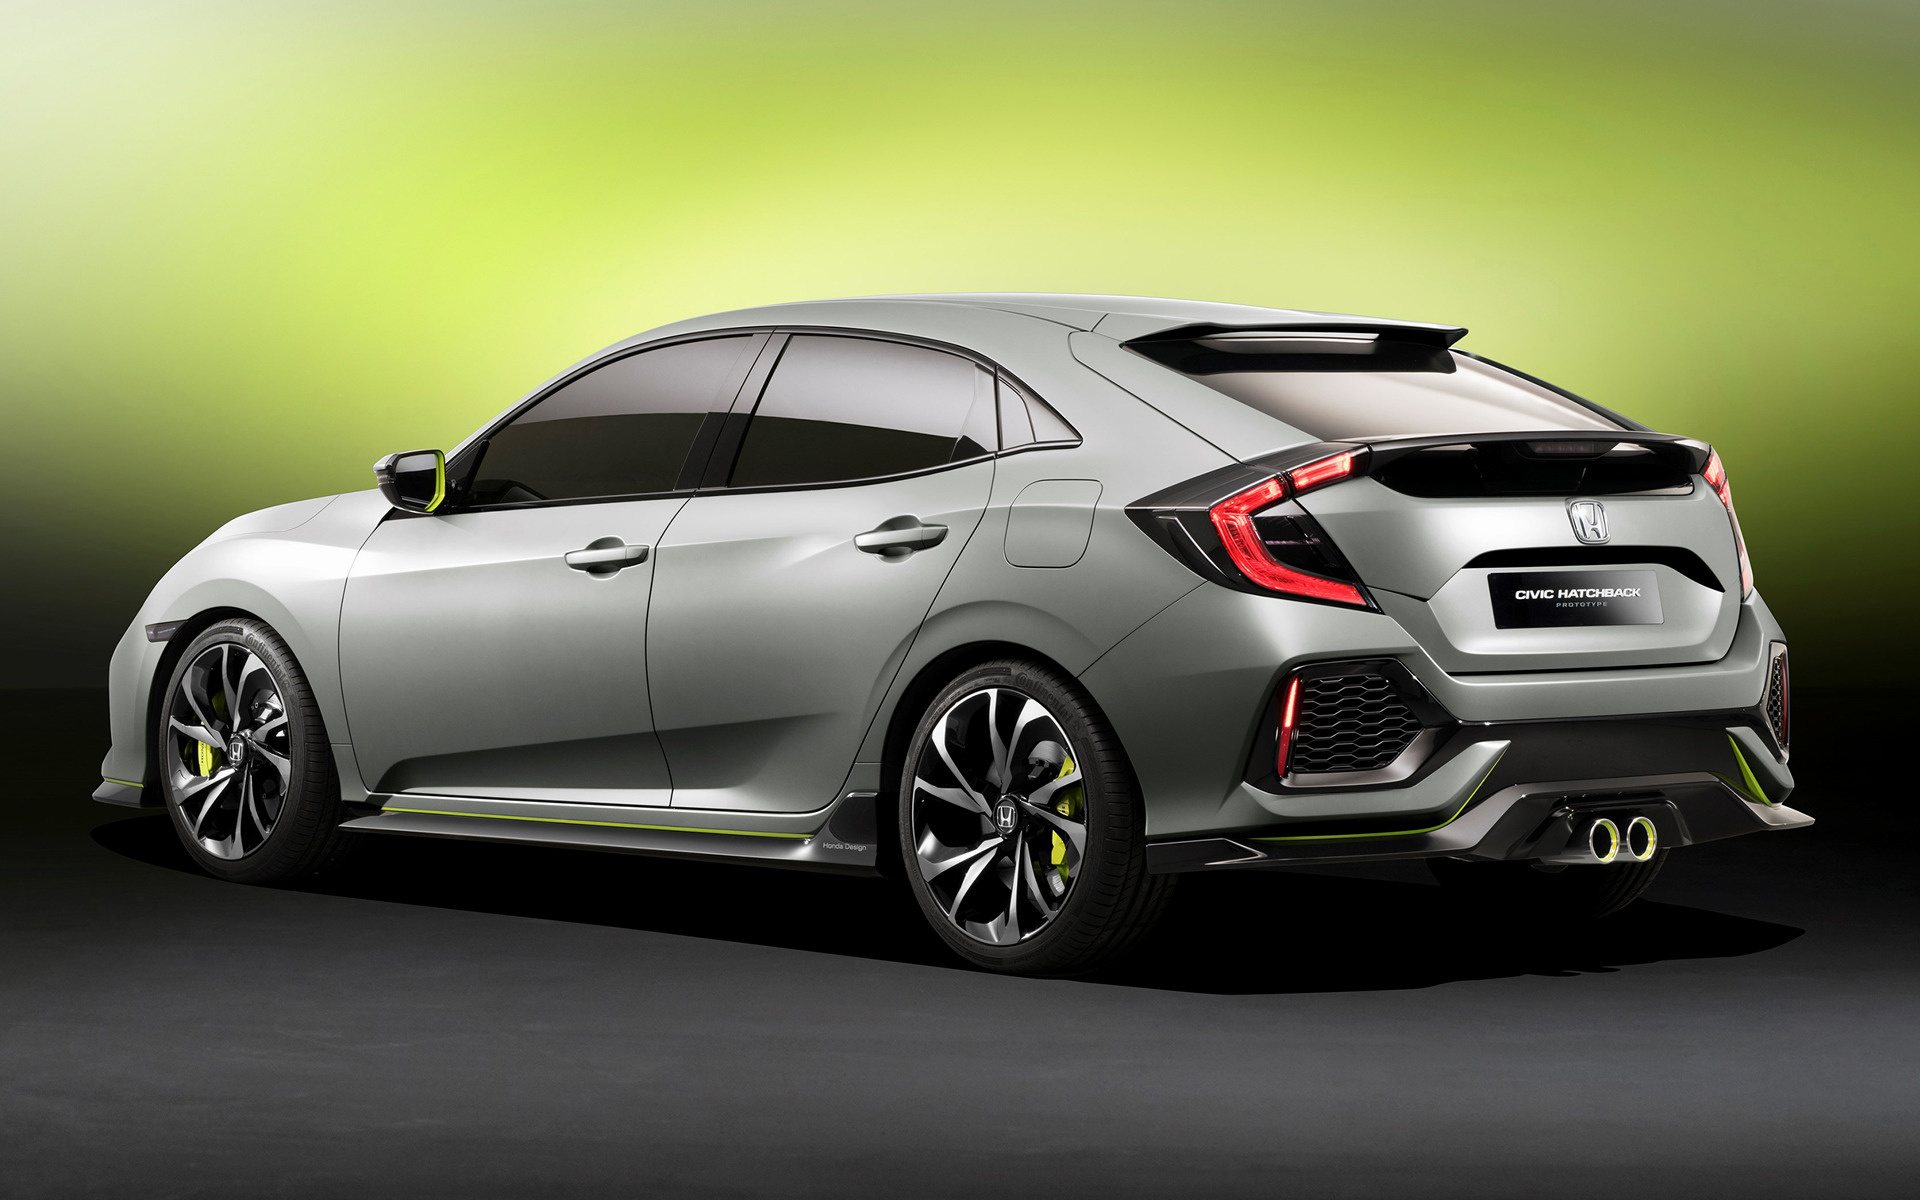 Honda Civic Hatchback Prototype (2016) Wallpapers and HD ...